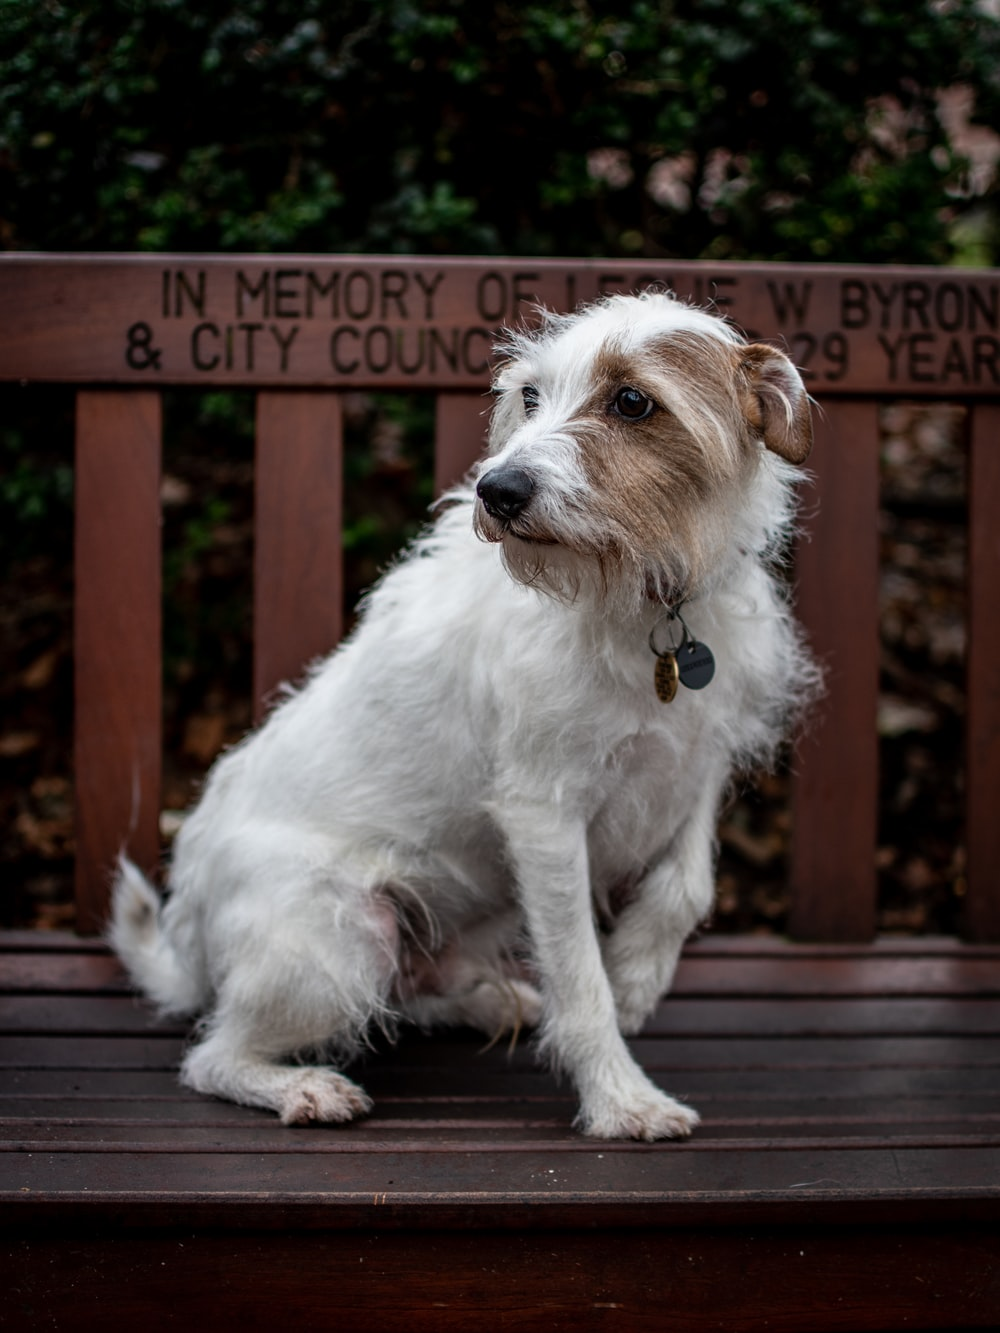 medium short-coated white and brown dog on wooden bench